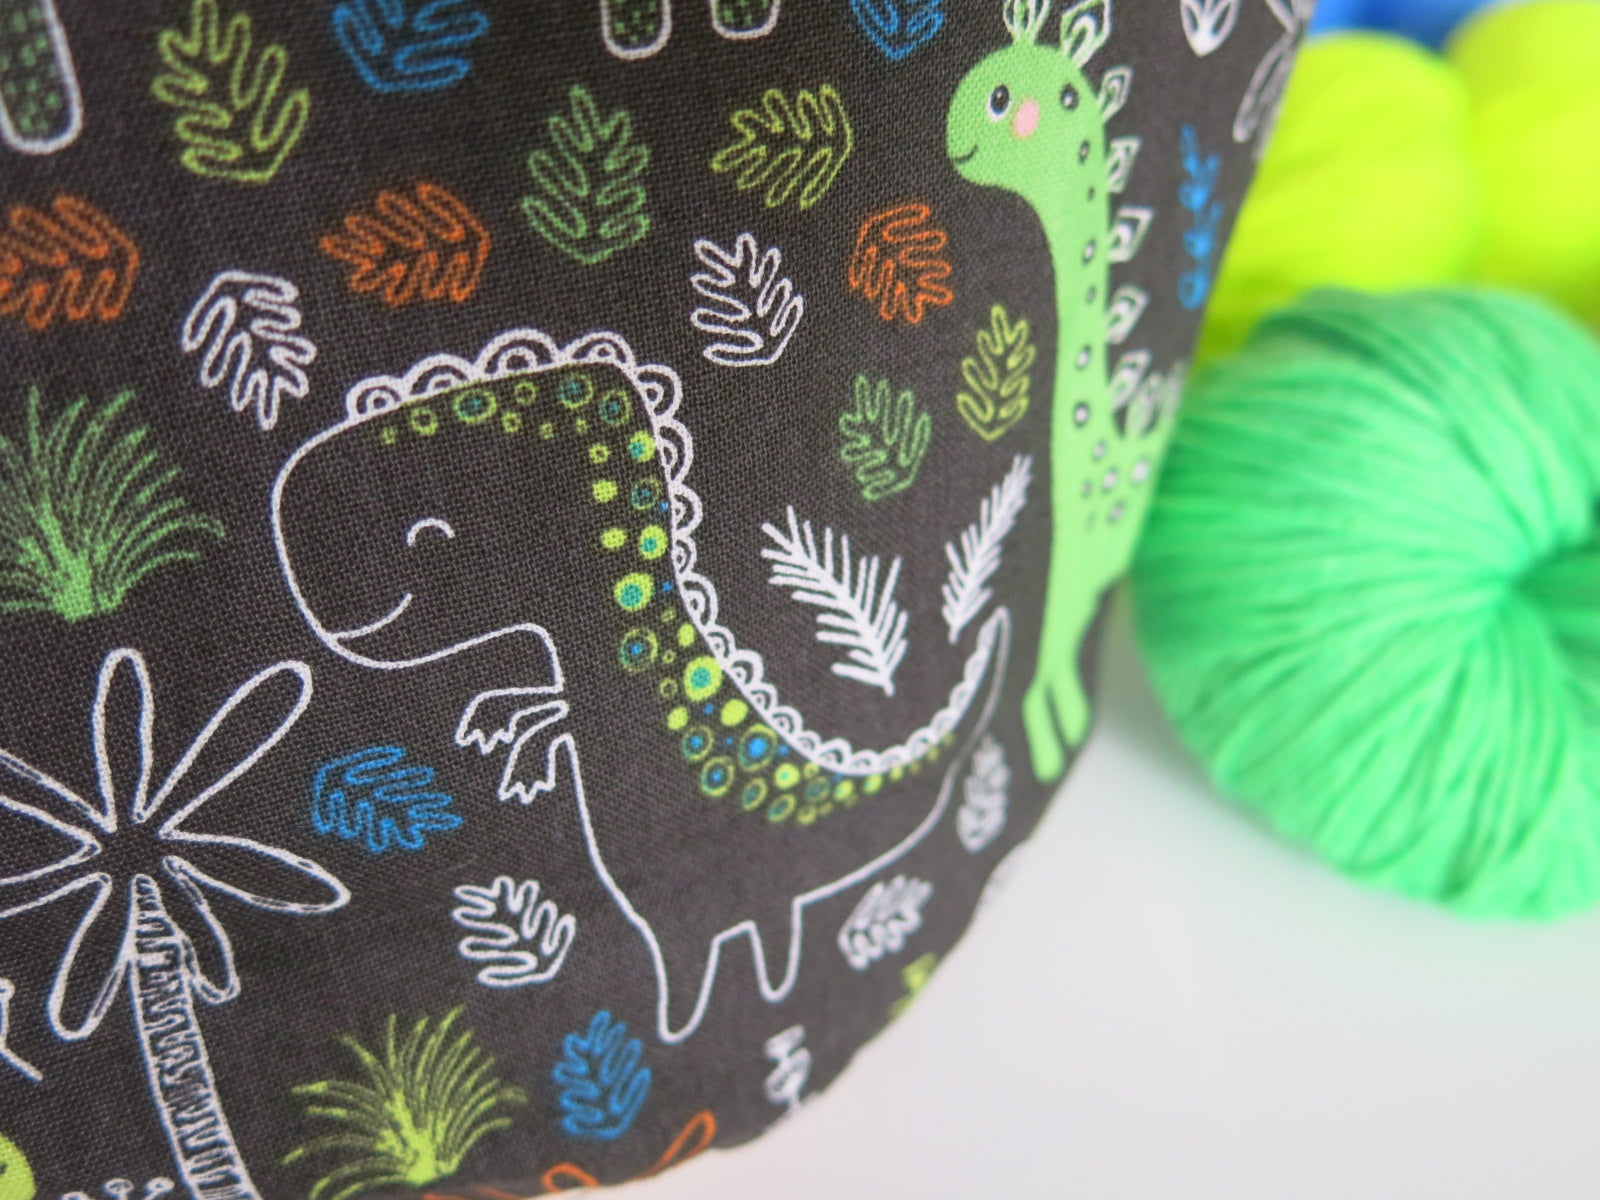 cotton drawstring knitting project bags with cartoon dinosaurs with a brown background